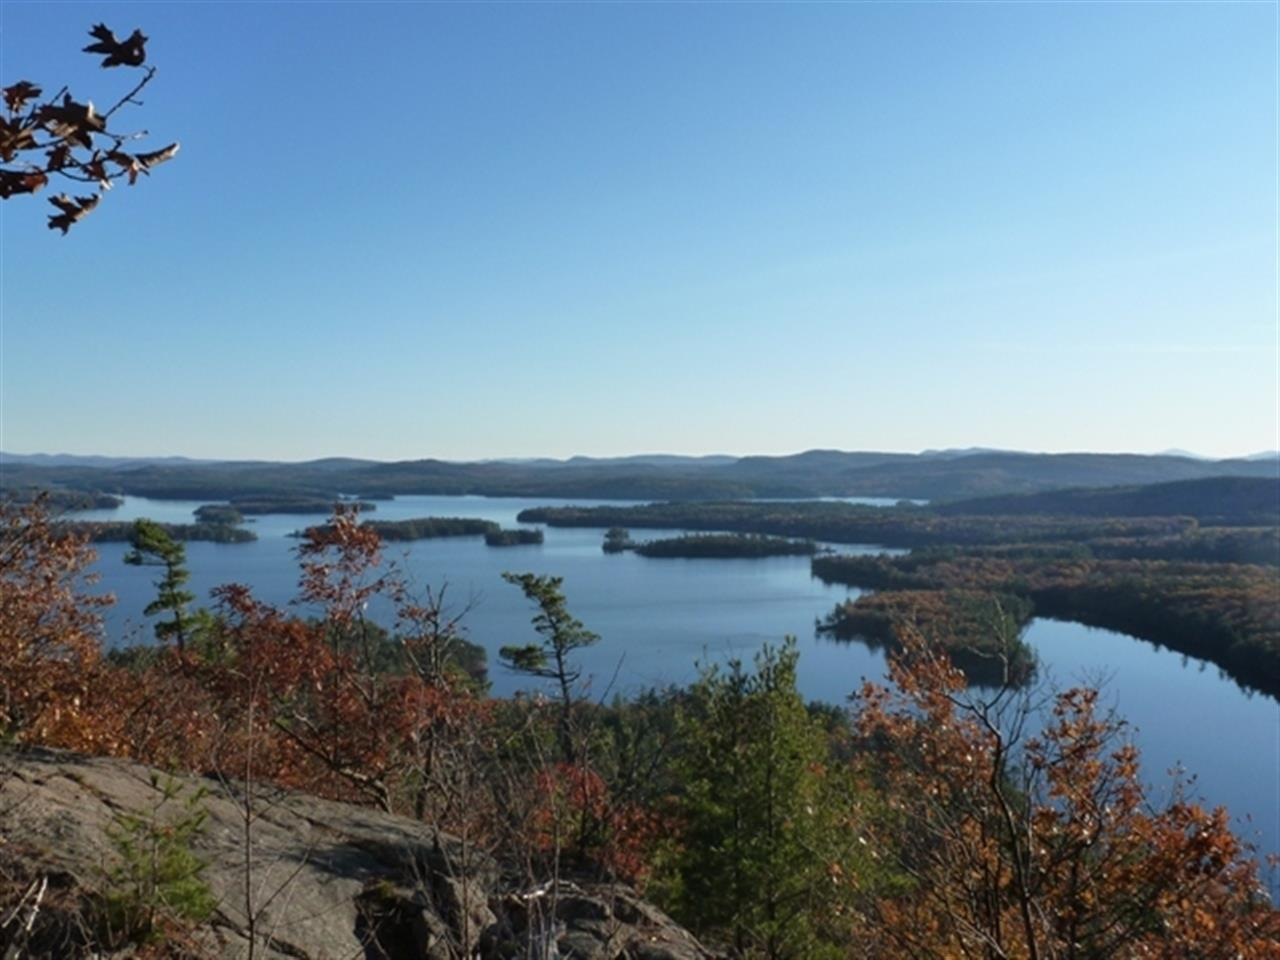 View of Squam Lake in New Hampshire taken from the top of Rattlesnake Mountain.